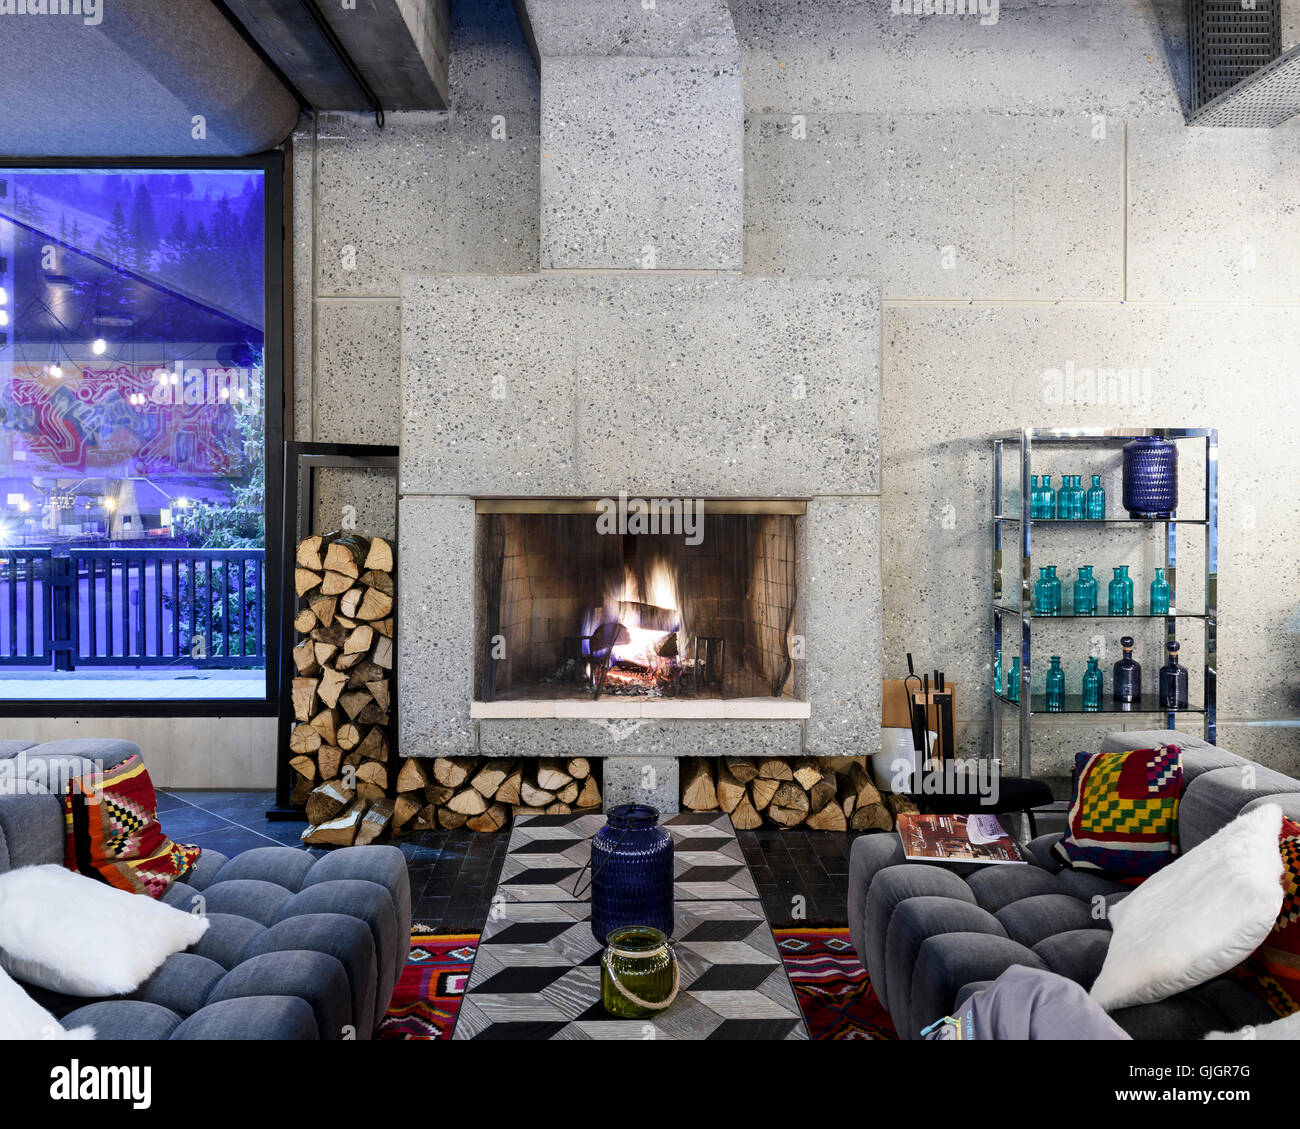 Fireplace at Hotel Totem. Flaine, Flaine, France. Architect: Marcel Breuer, 1969. Stock Photo